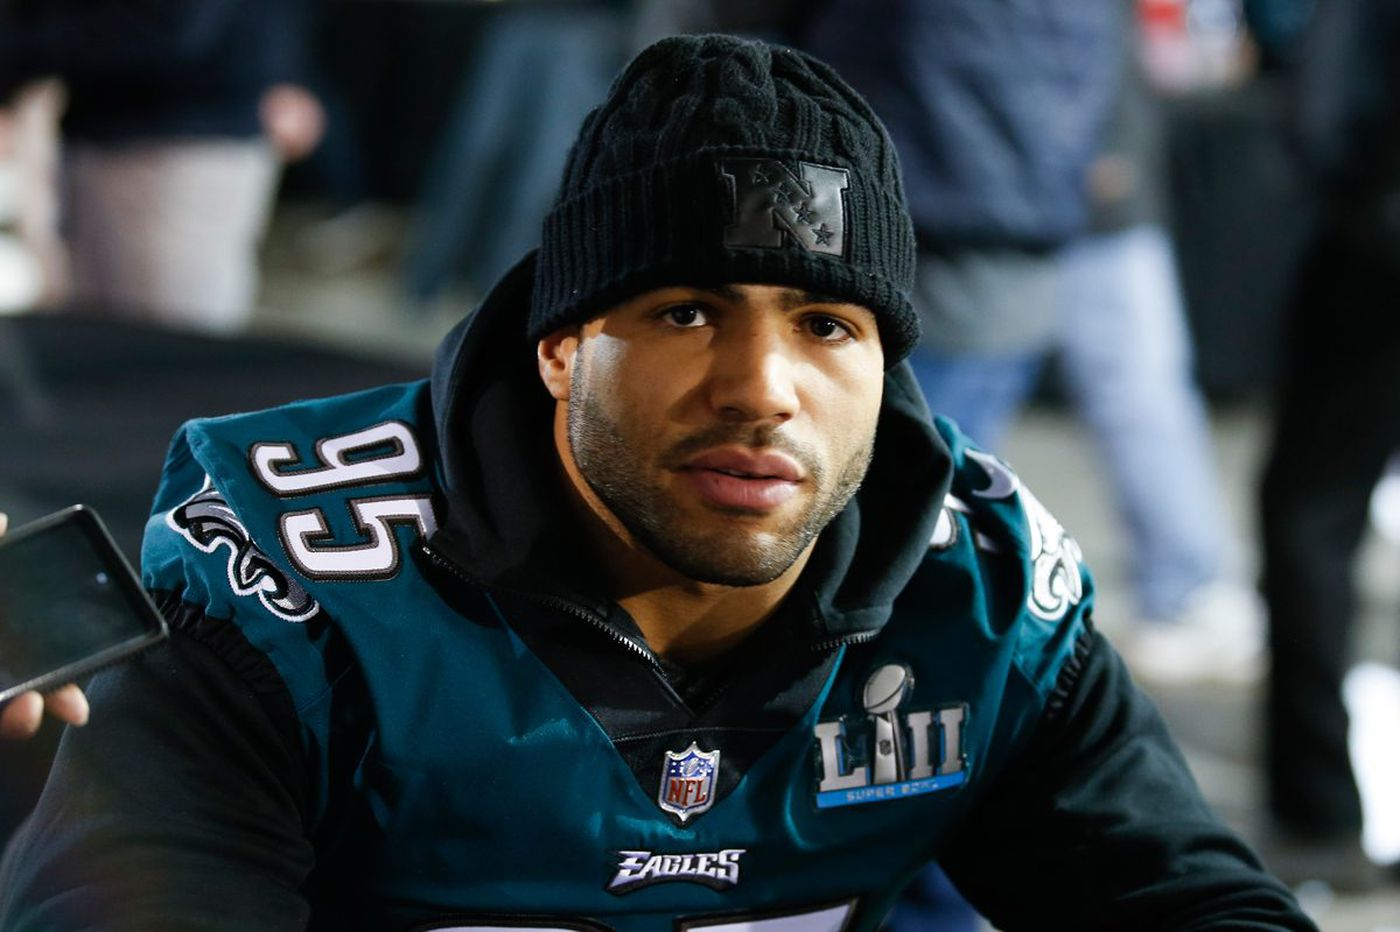 'It's going to be so dope': Eagles linebacker Mychal Kendricks to join NBC's Flyers broadcast